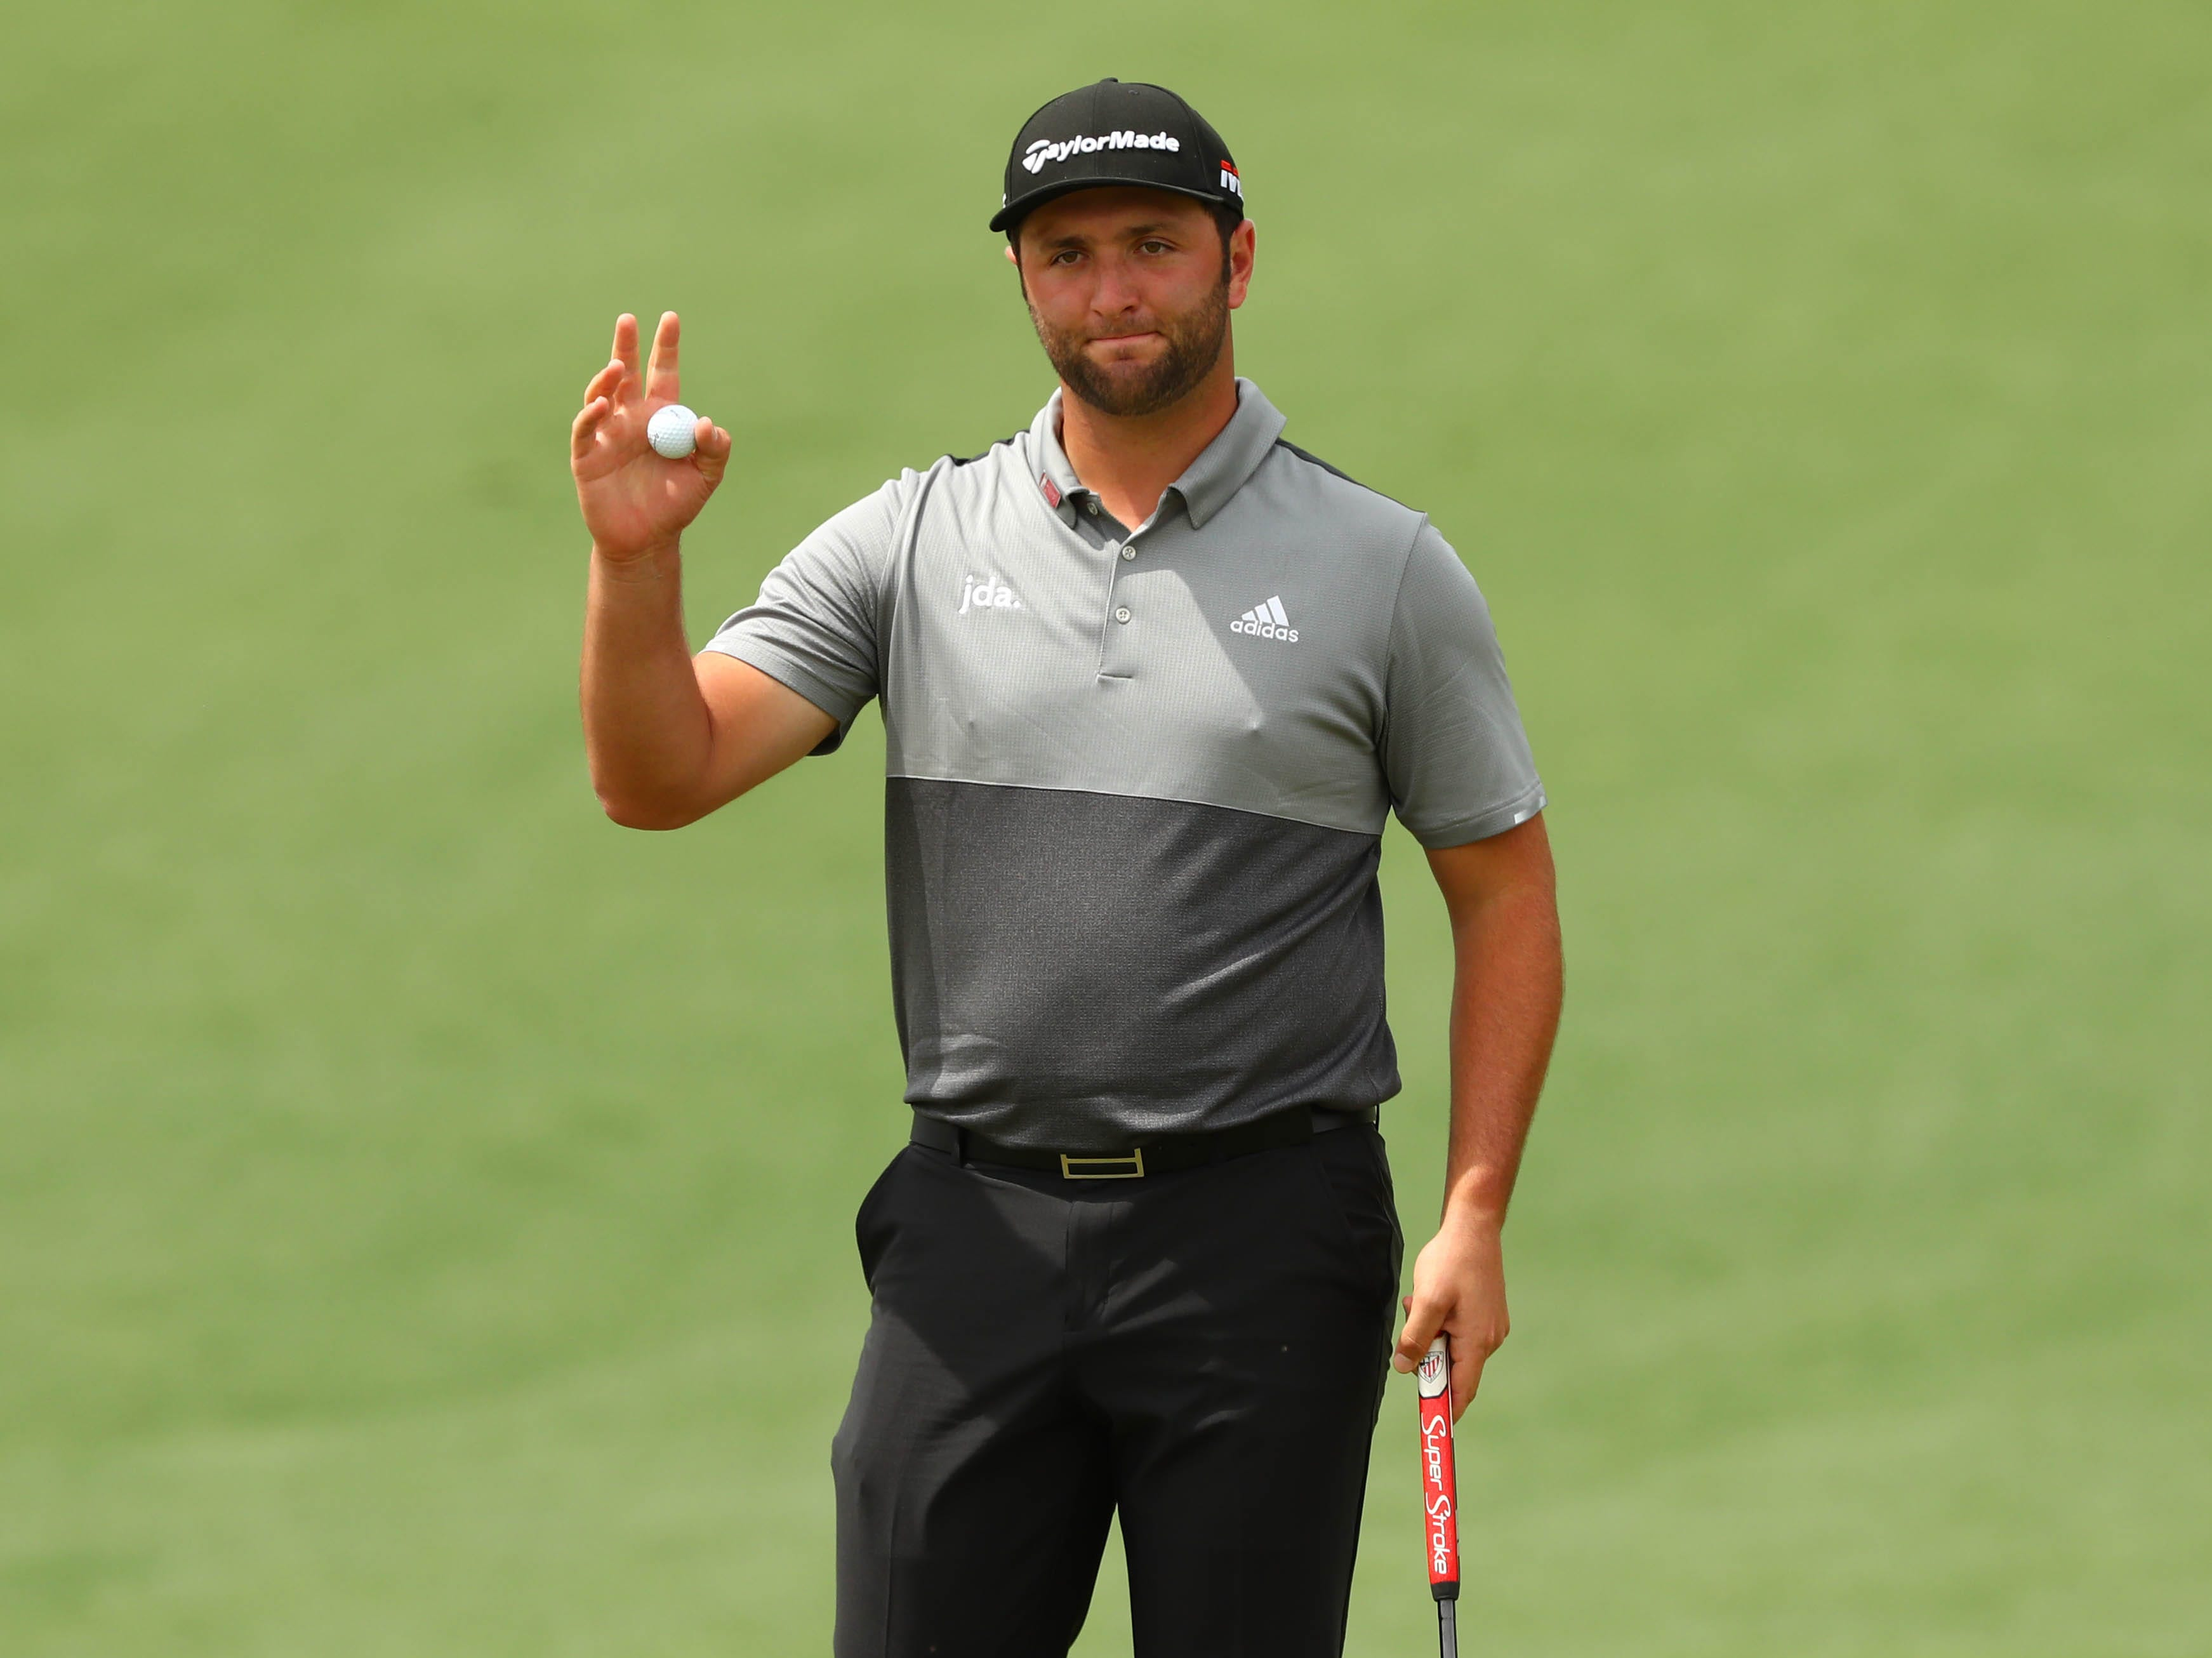 Apr 12, 2019; Augusta, GA, USA; Jon Rahm after putting on the 2nd green during the second round of The Masters golf tournament at Augusta National Golf Club. Mandatory Credit: Rob Schumacher-USA TODAY Sports